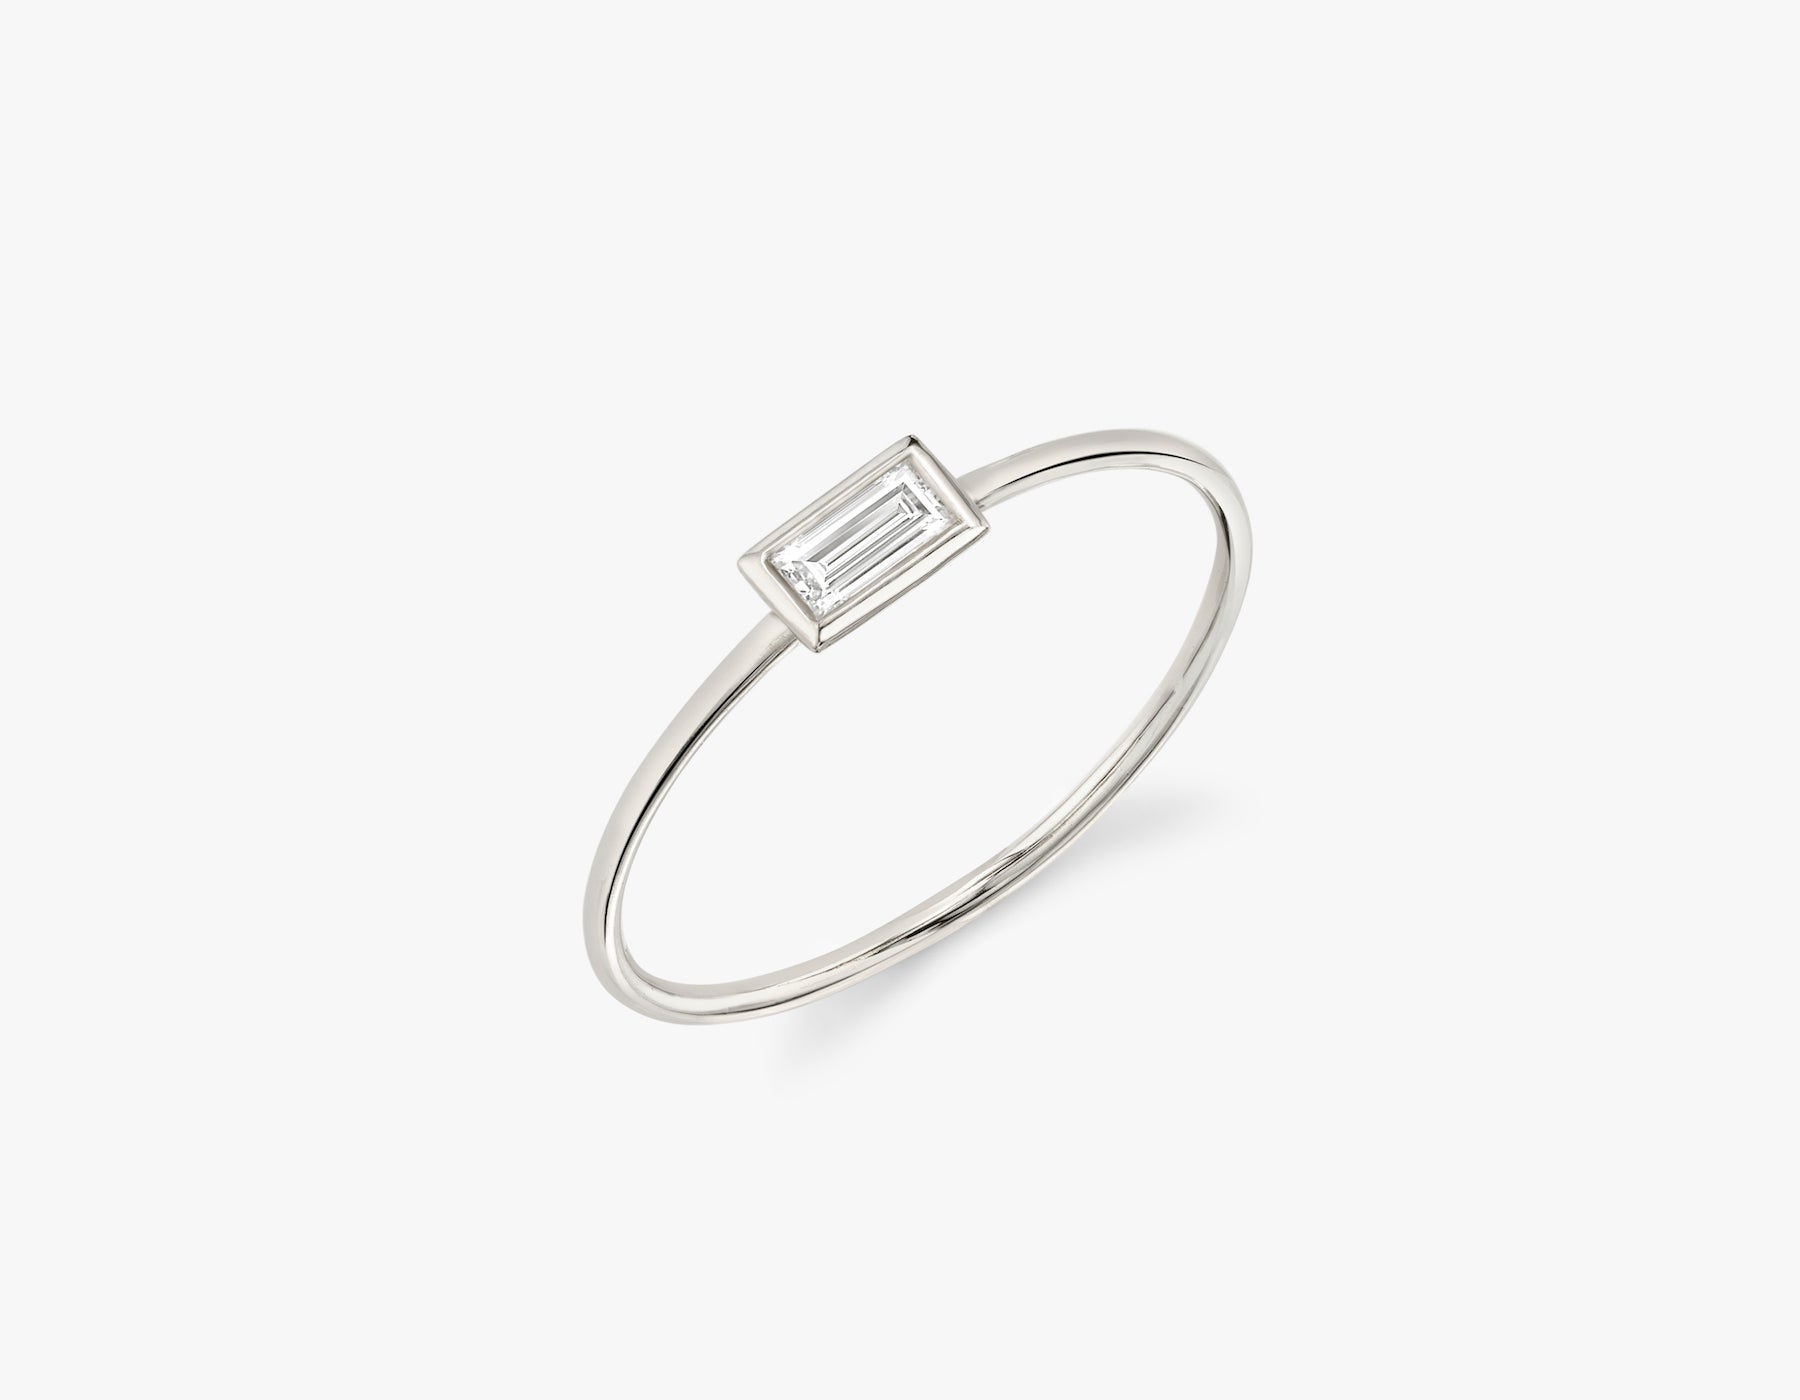 Vrai simple minimalist Baguette Diamond Bezel Ring, 14K White Gold